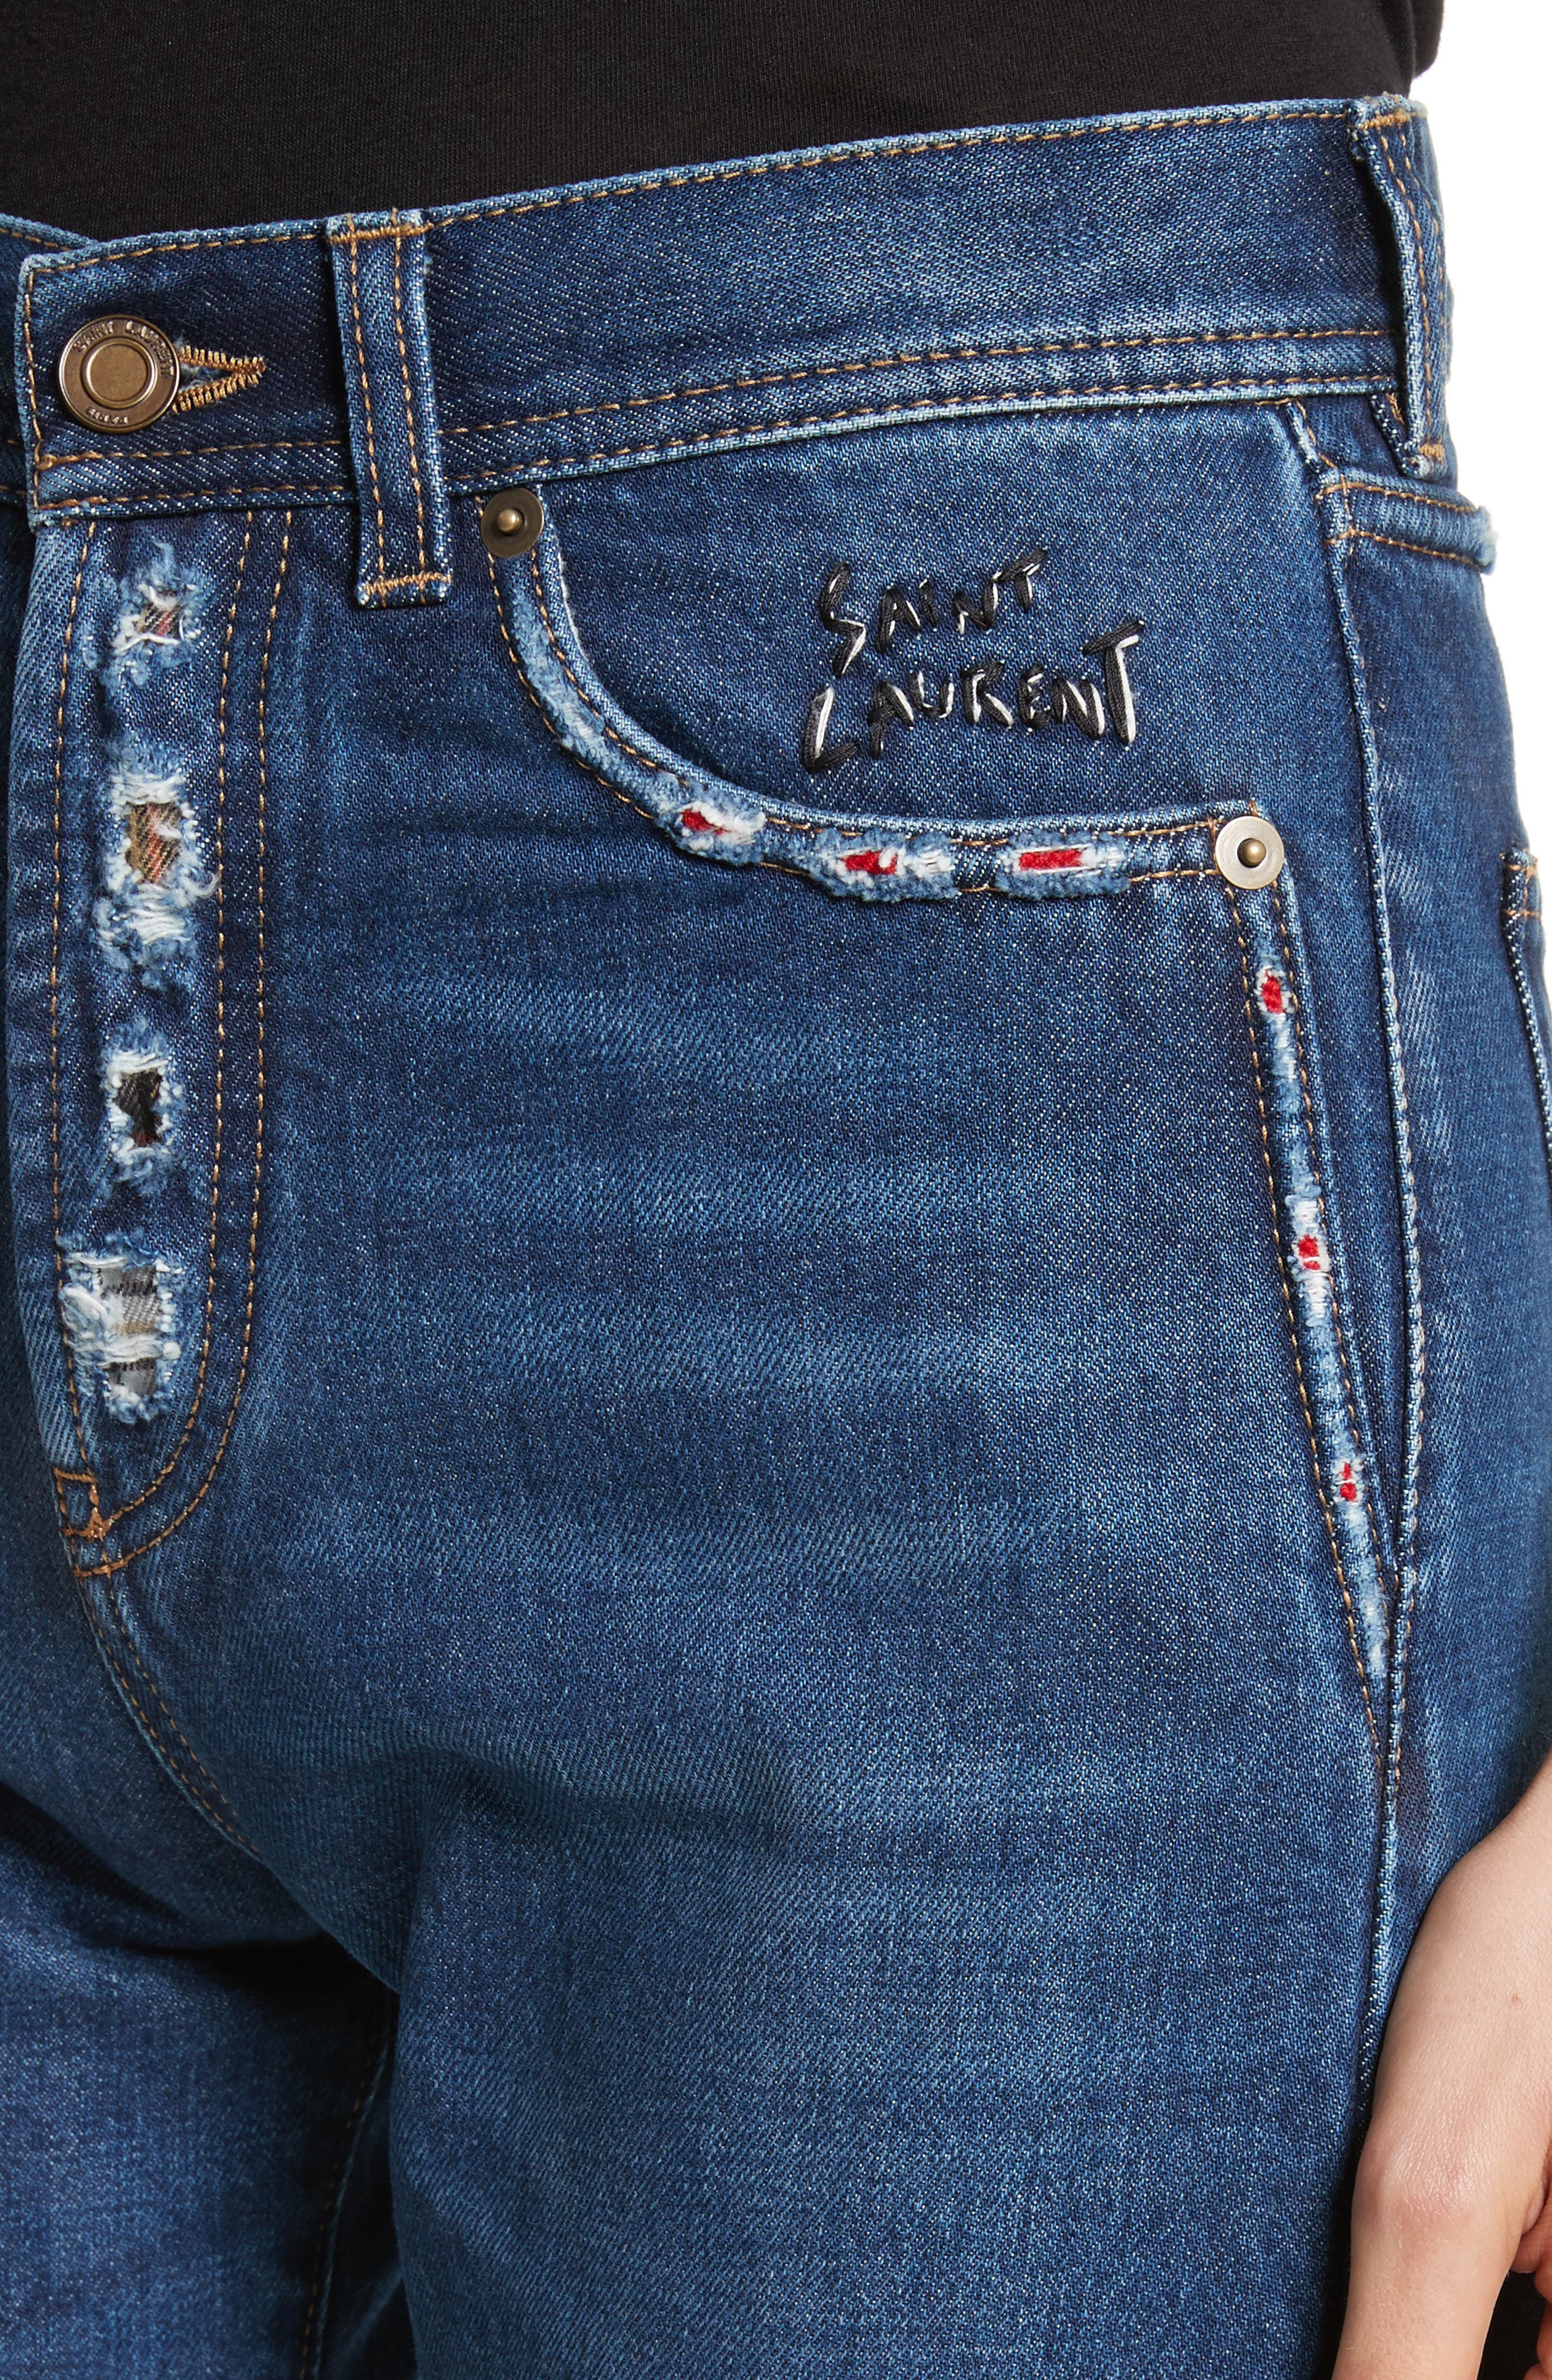 Embroidered Jeans,                             Alternate thumbnail 4, color,                             411